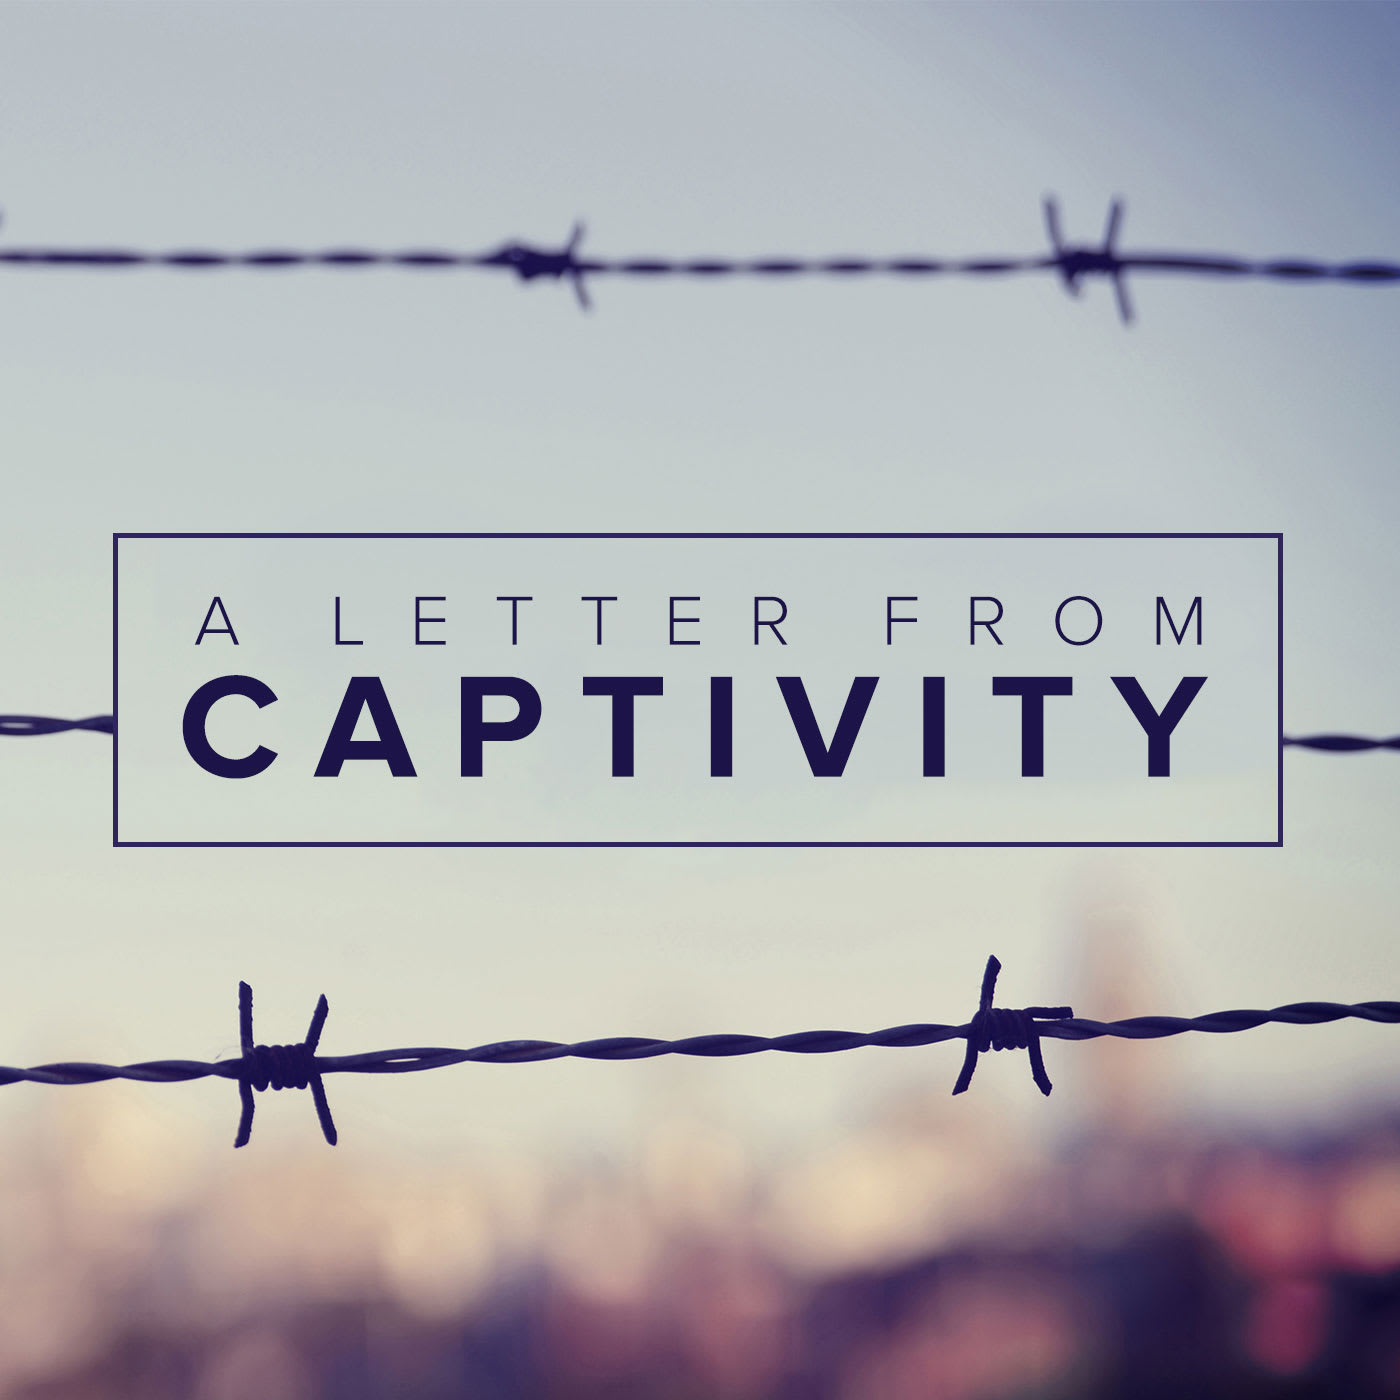 A Letter From Captivity